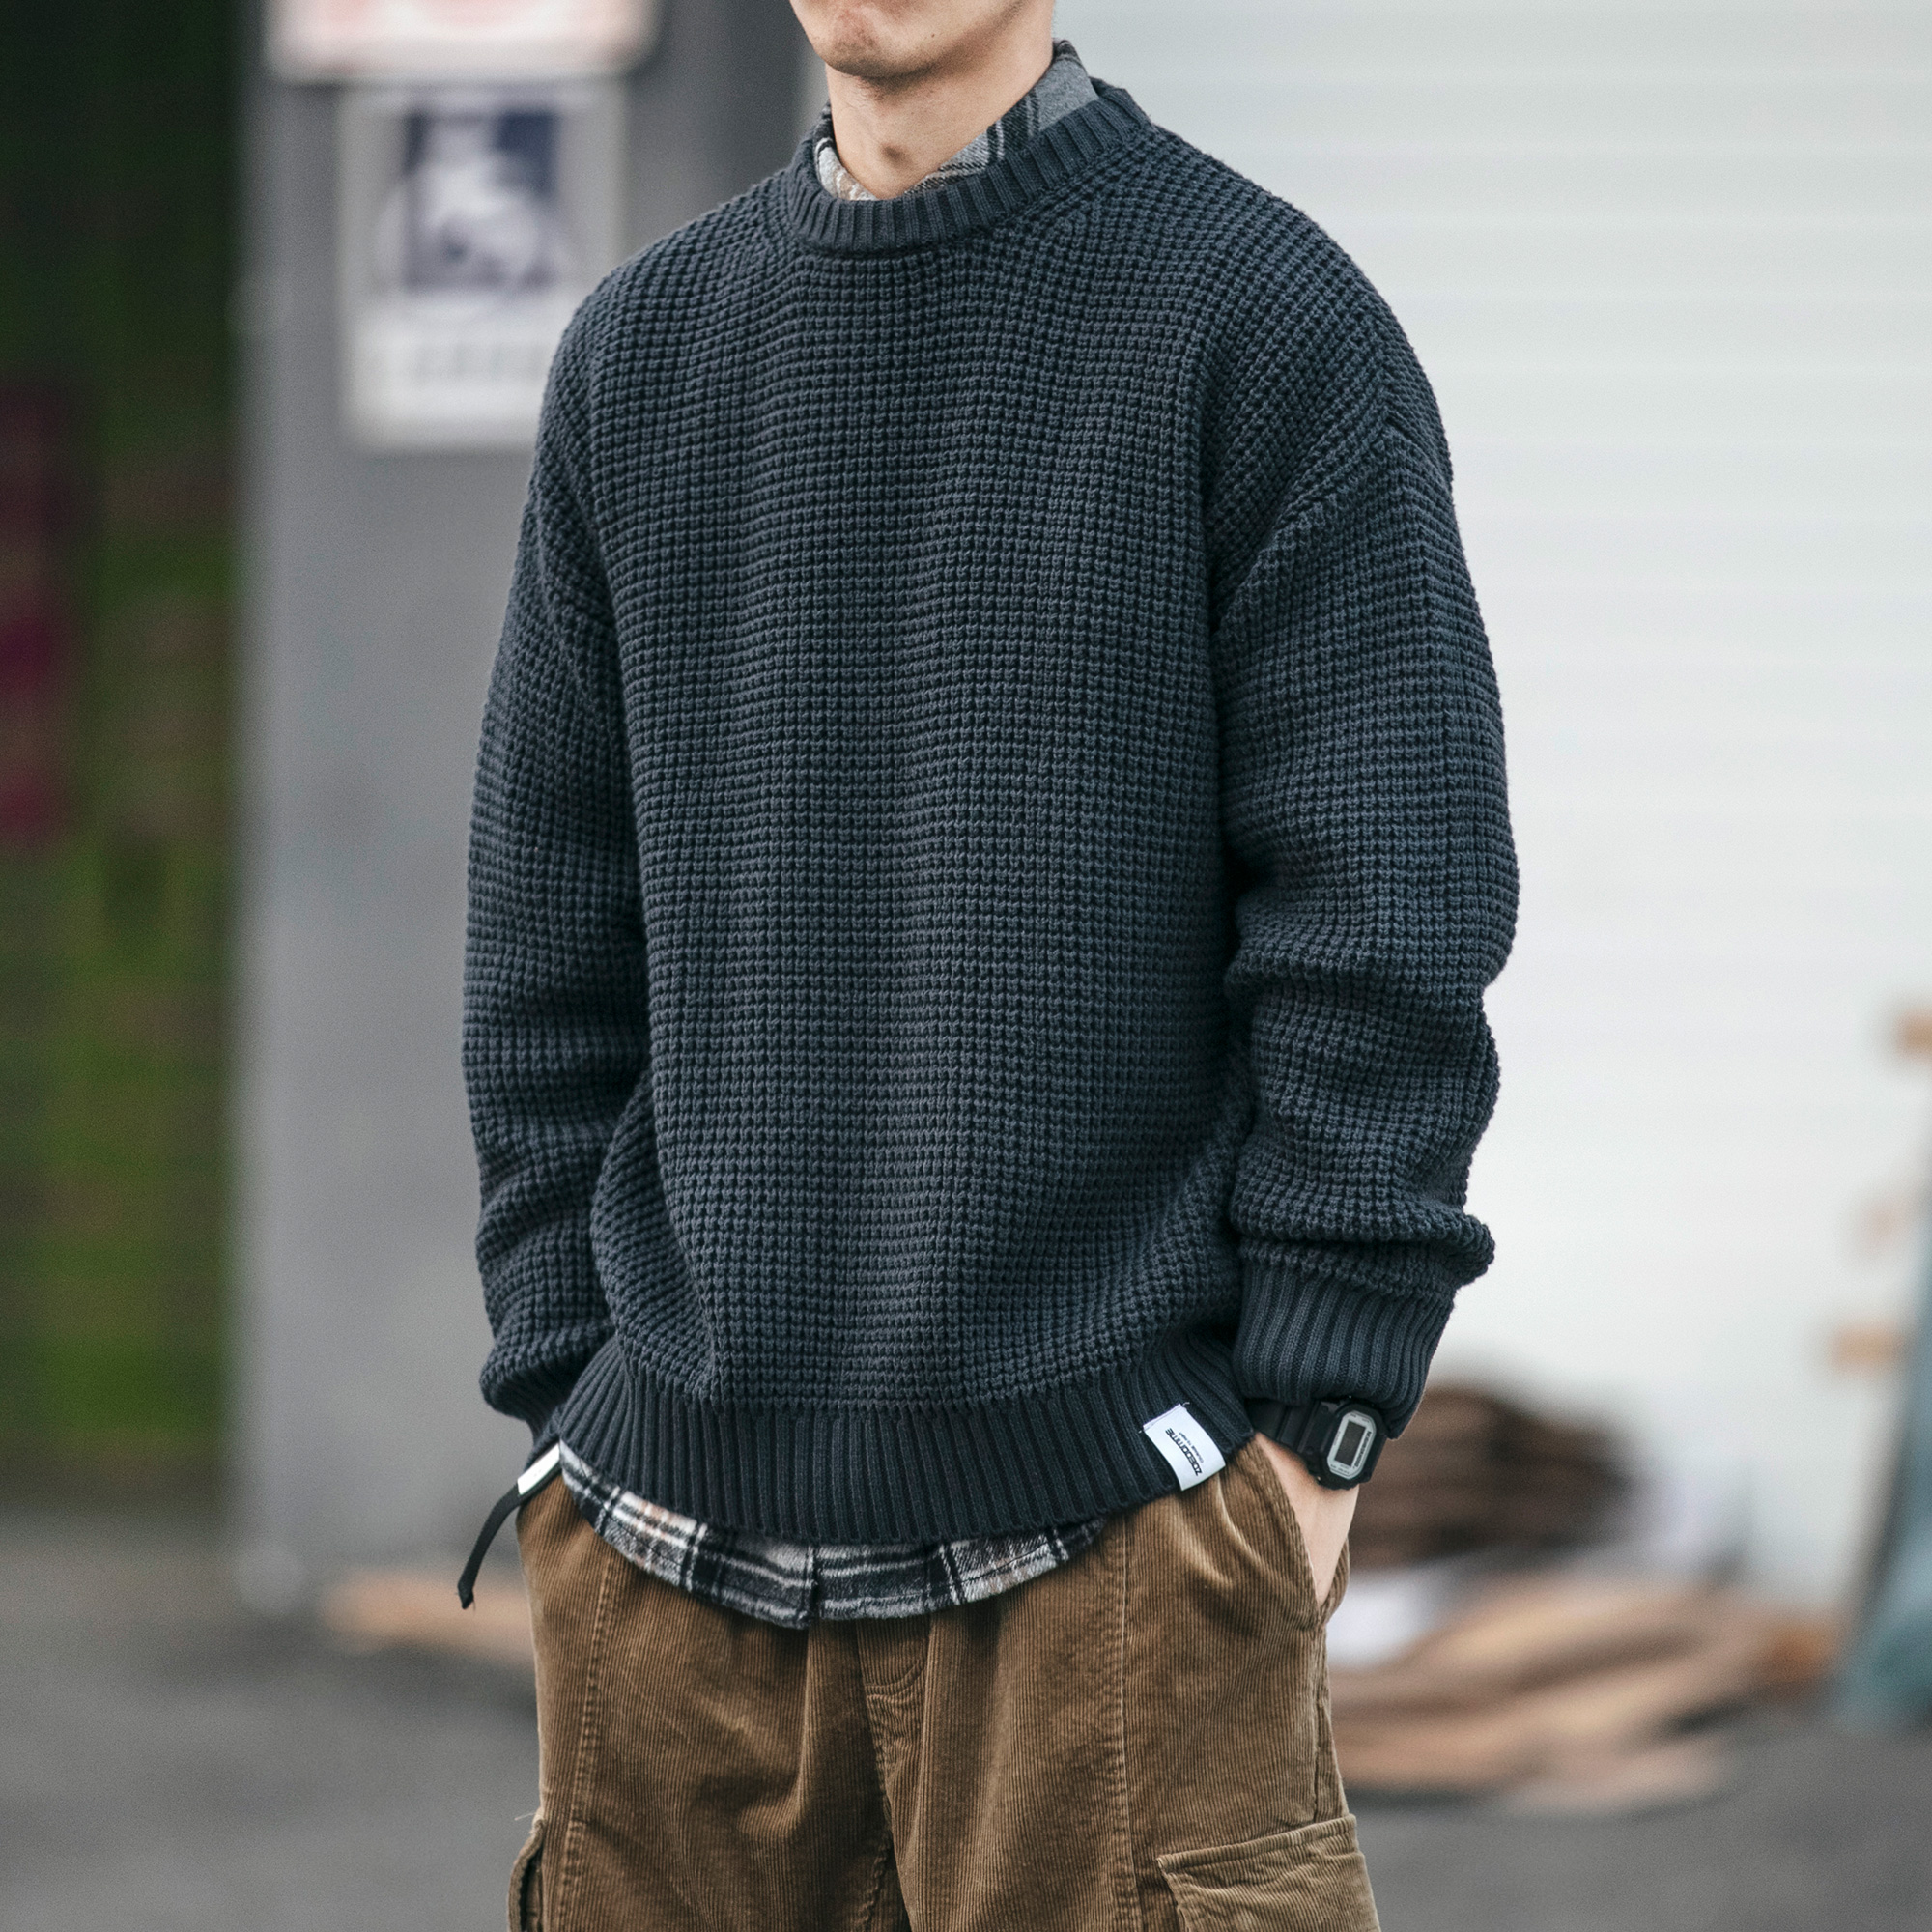 Heavy 800g winter sweater men's thick knit sweater Korean version of the trend loose solid color casual inner couple jacket